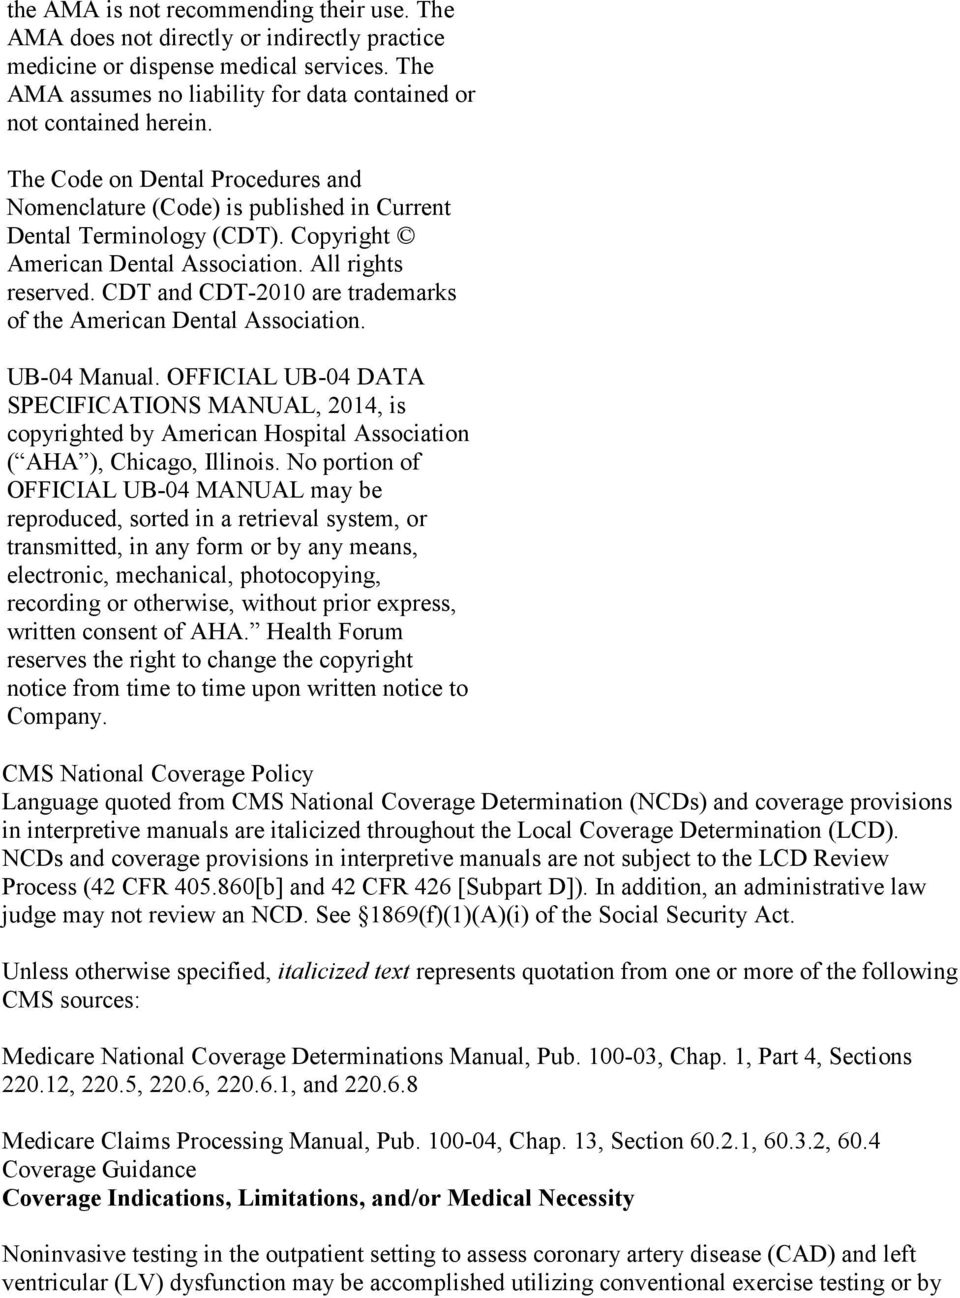 CDT and CDT-2010 are trademarks of the American Dental Association. UB-04